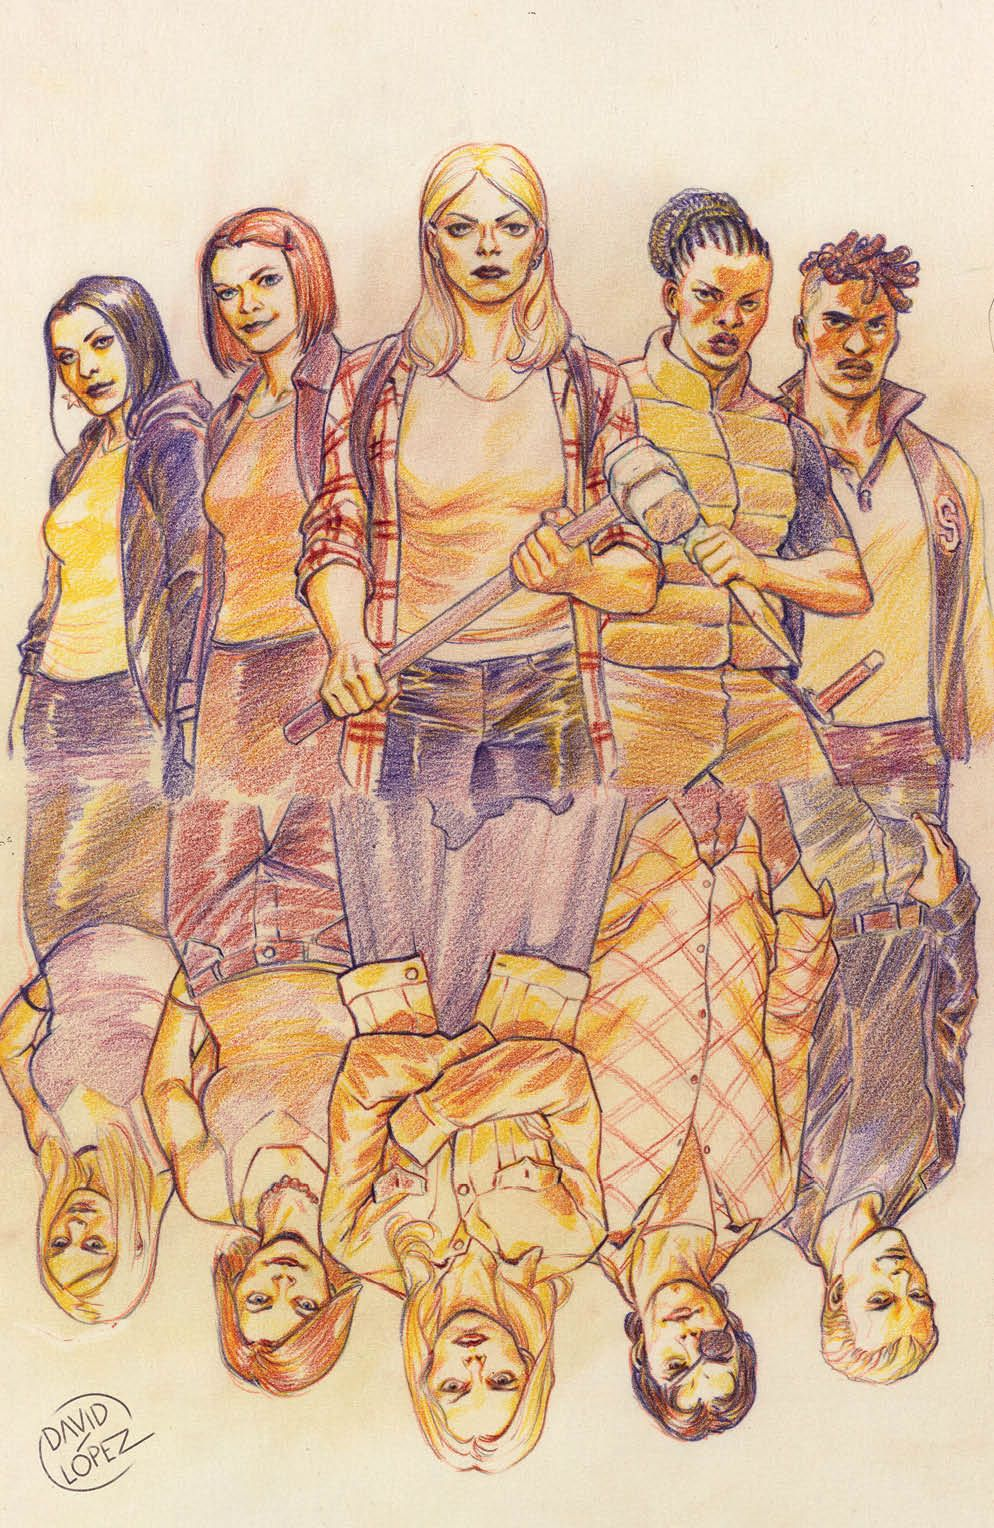 Buffy_024_Cover_D_Variant ComicList Previews: BUFFY THE VAMPIRE SLAYER #24